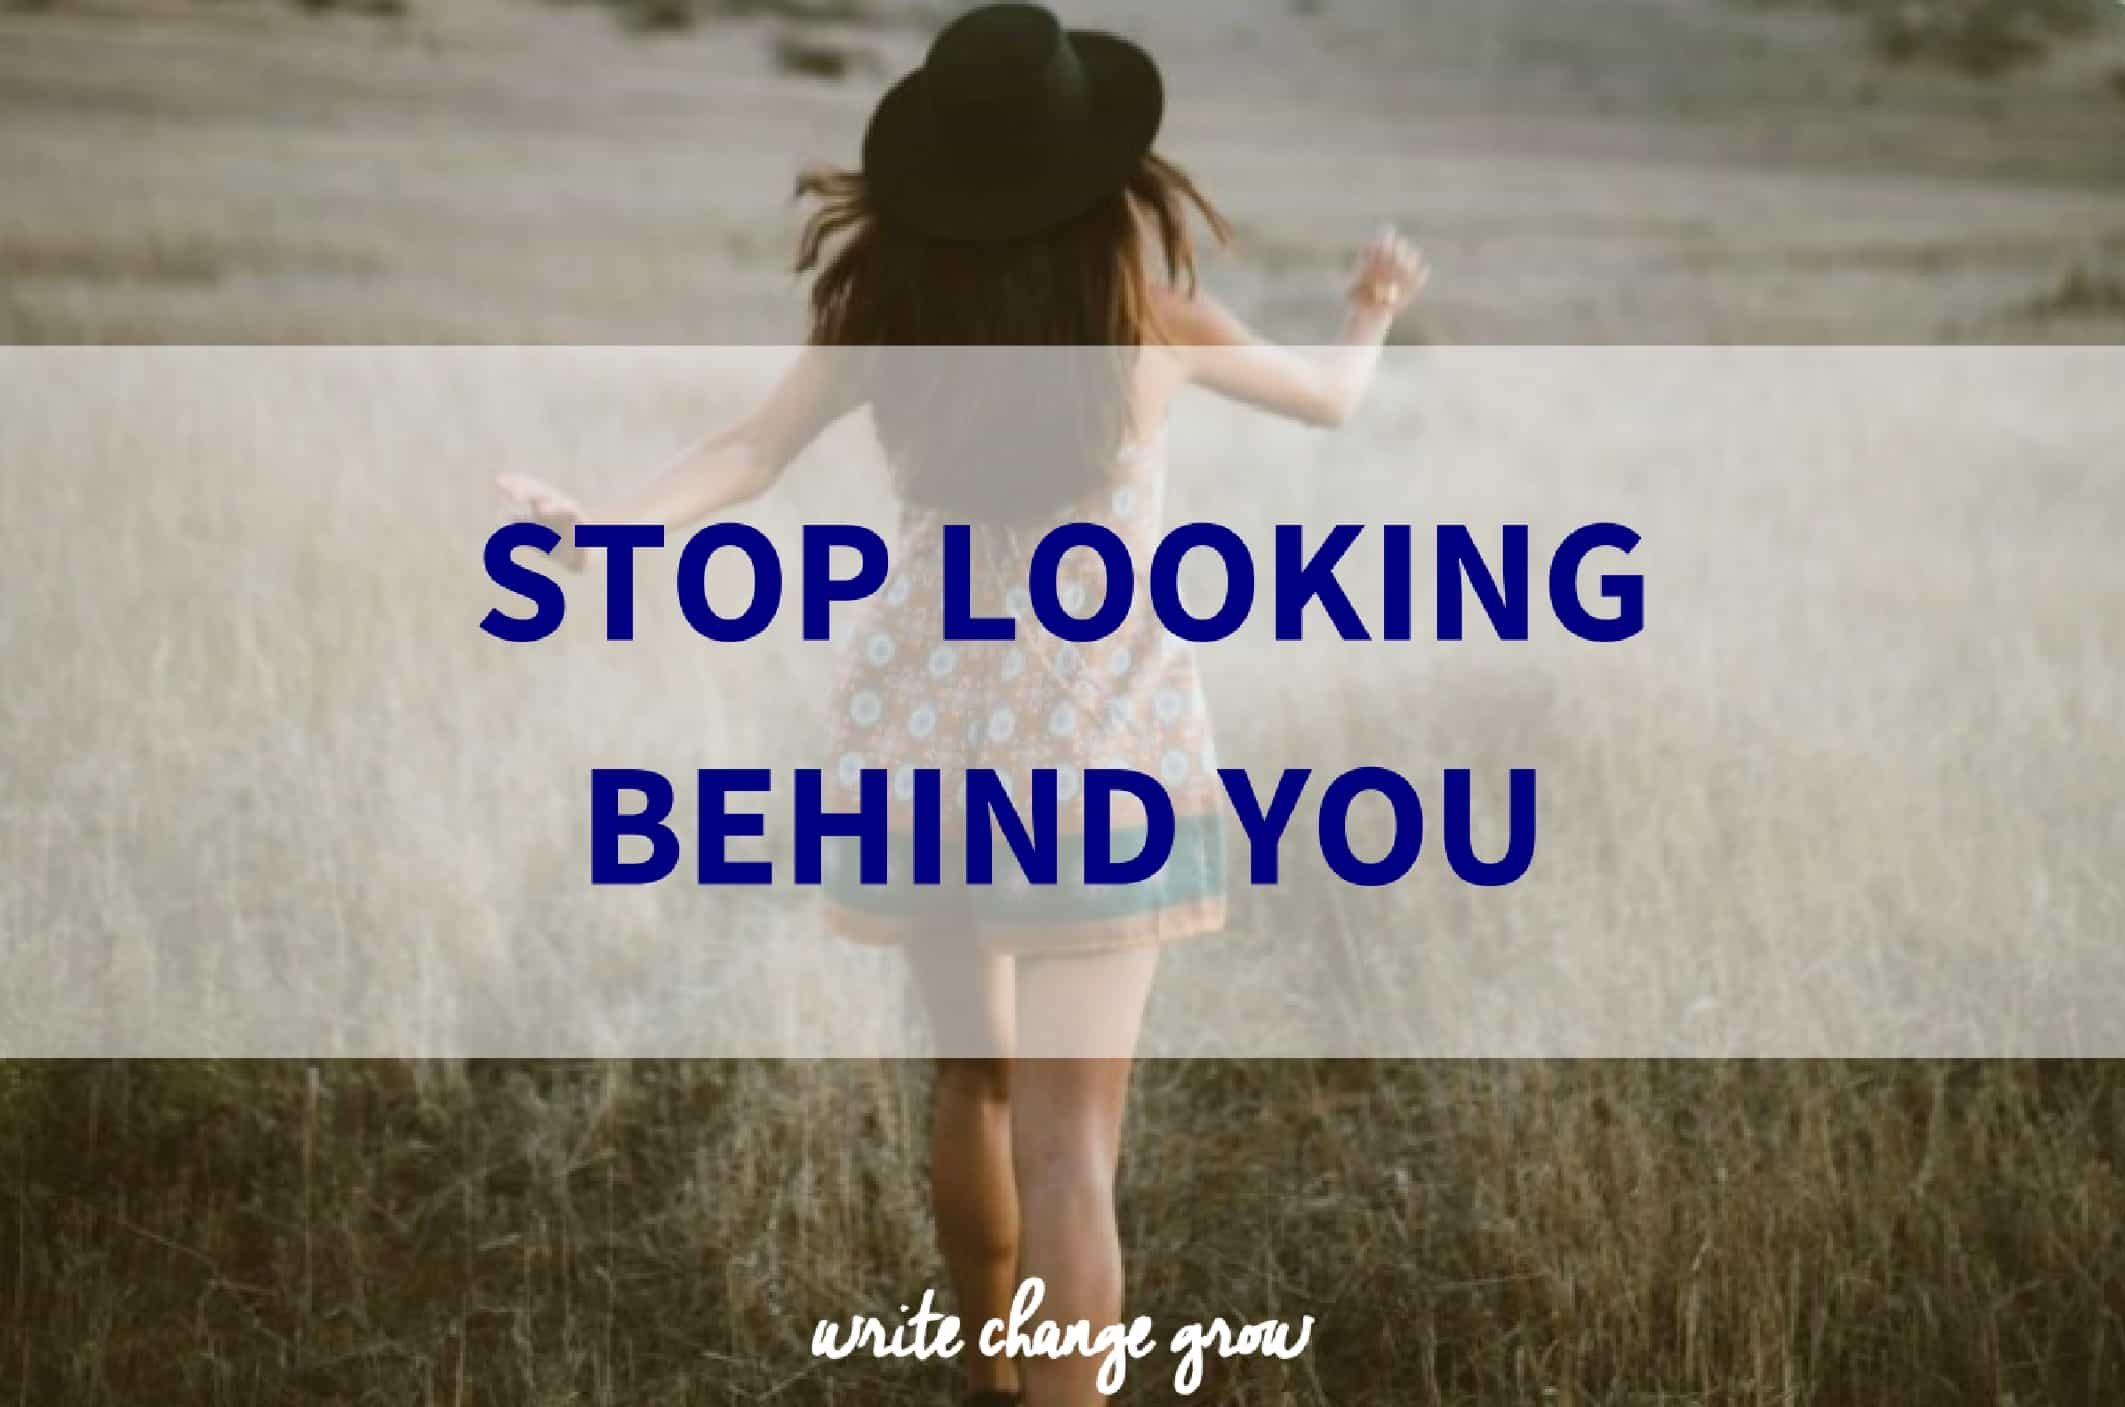 Let go of the past, stop looking behind you and move your life forward.